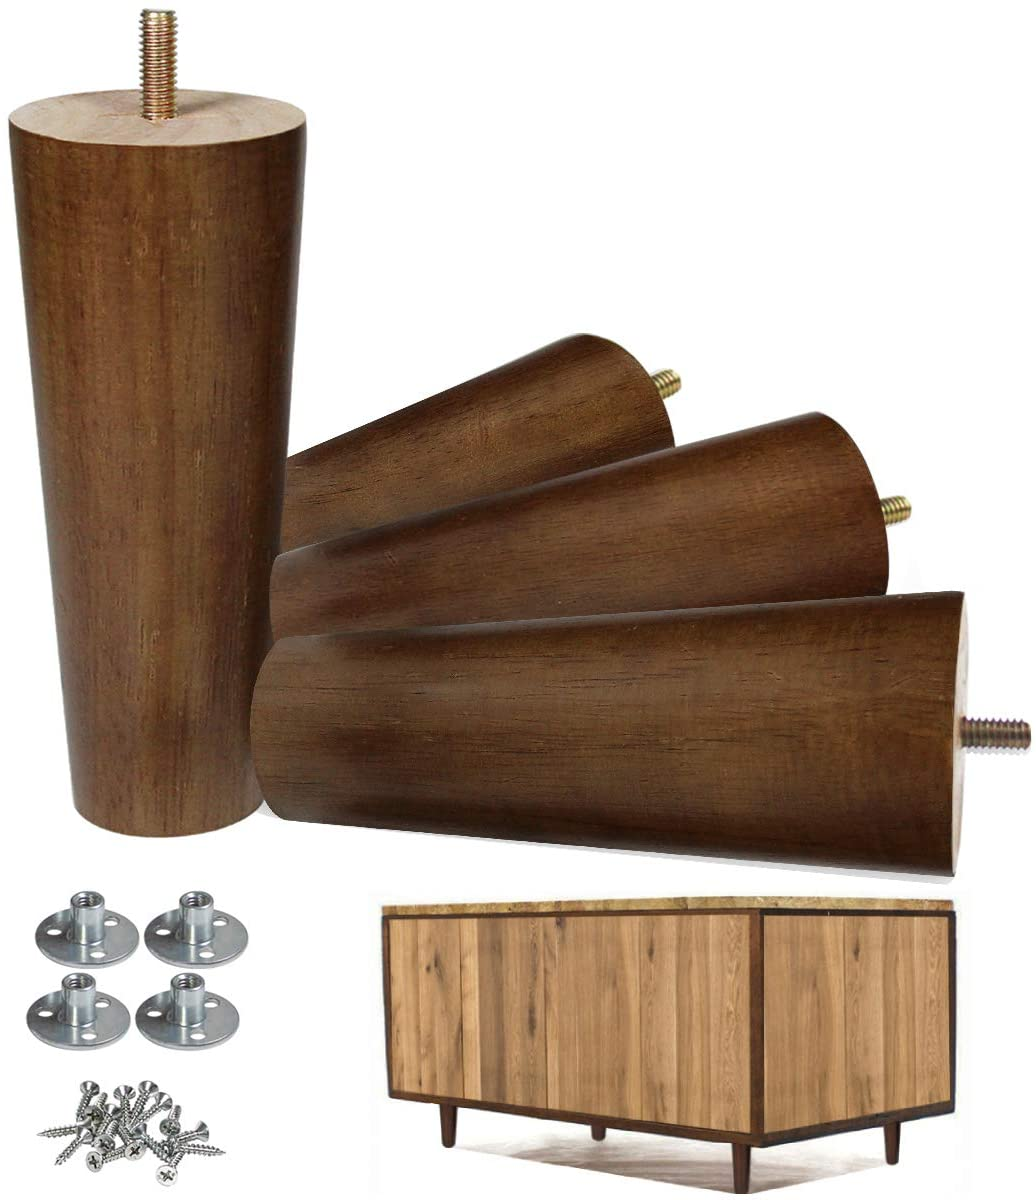 AORYVIC Cheap bargain Furniture Legs Wood Replacement for Cabin Sofa Max 85% OFF